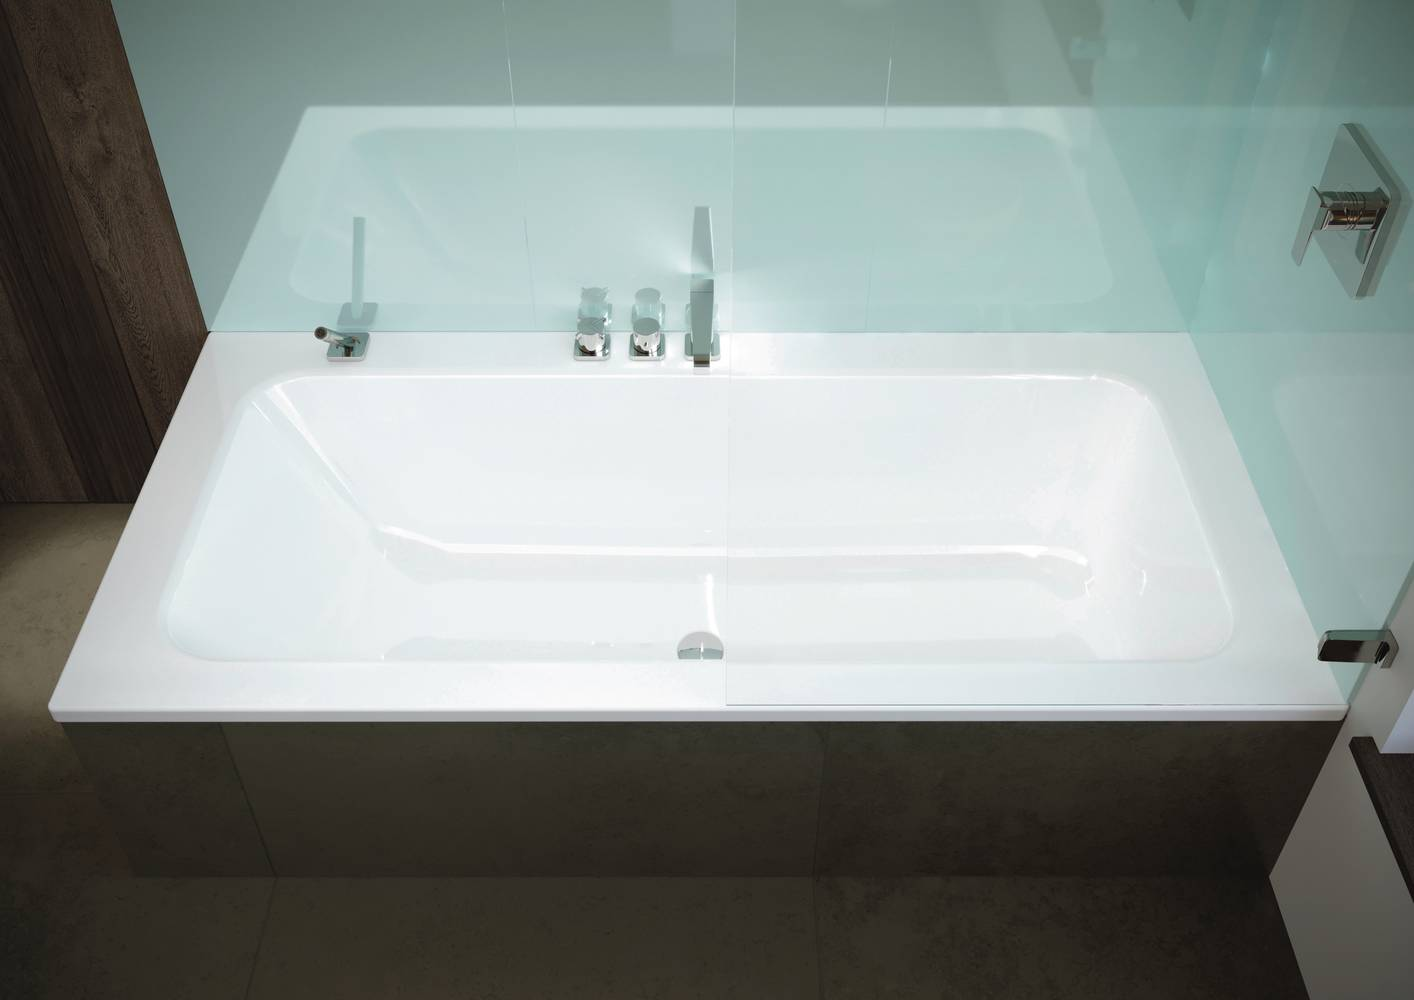 Kaldewei Puro Set Wide: maximum flexibility for bathroom design